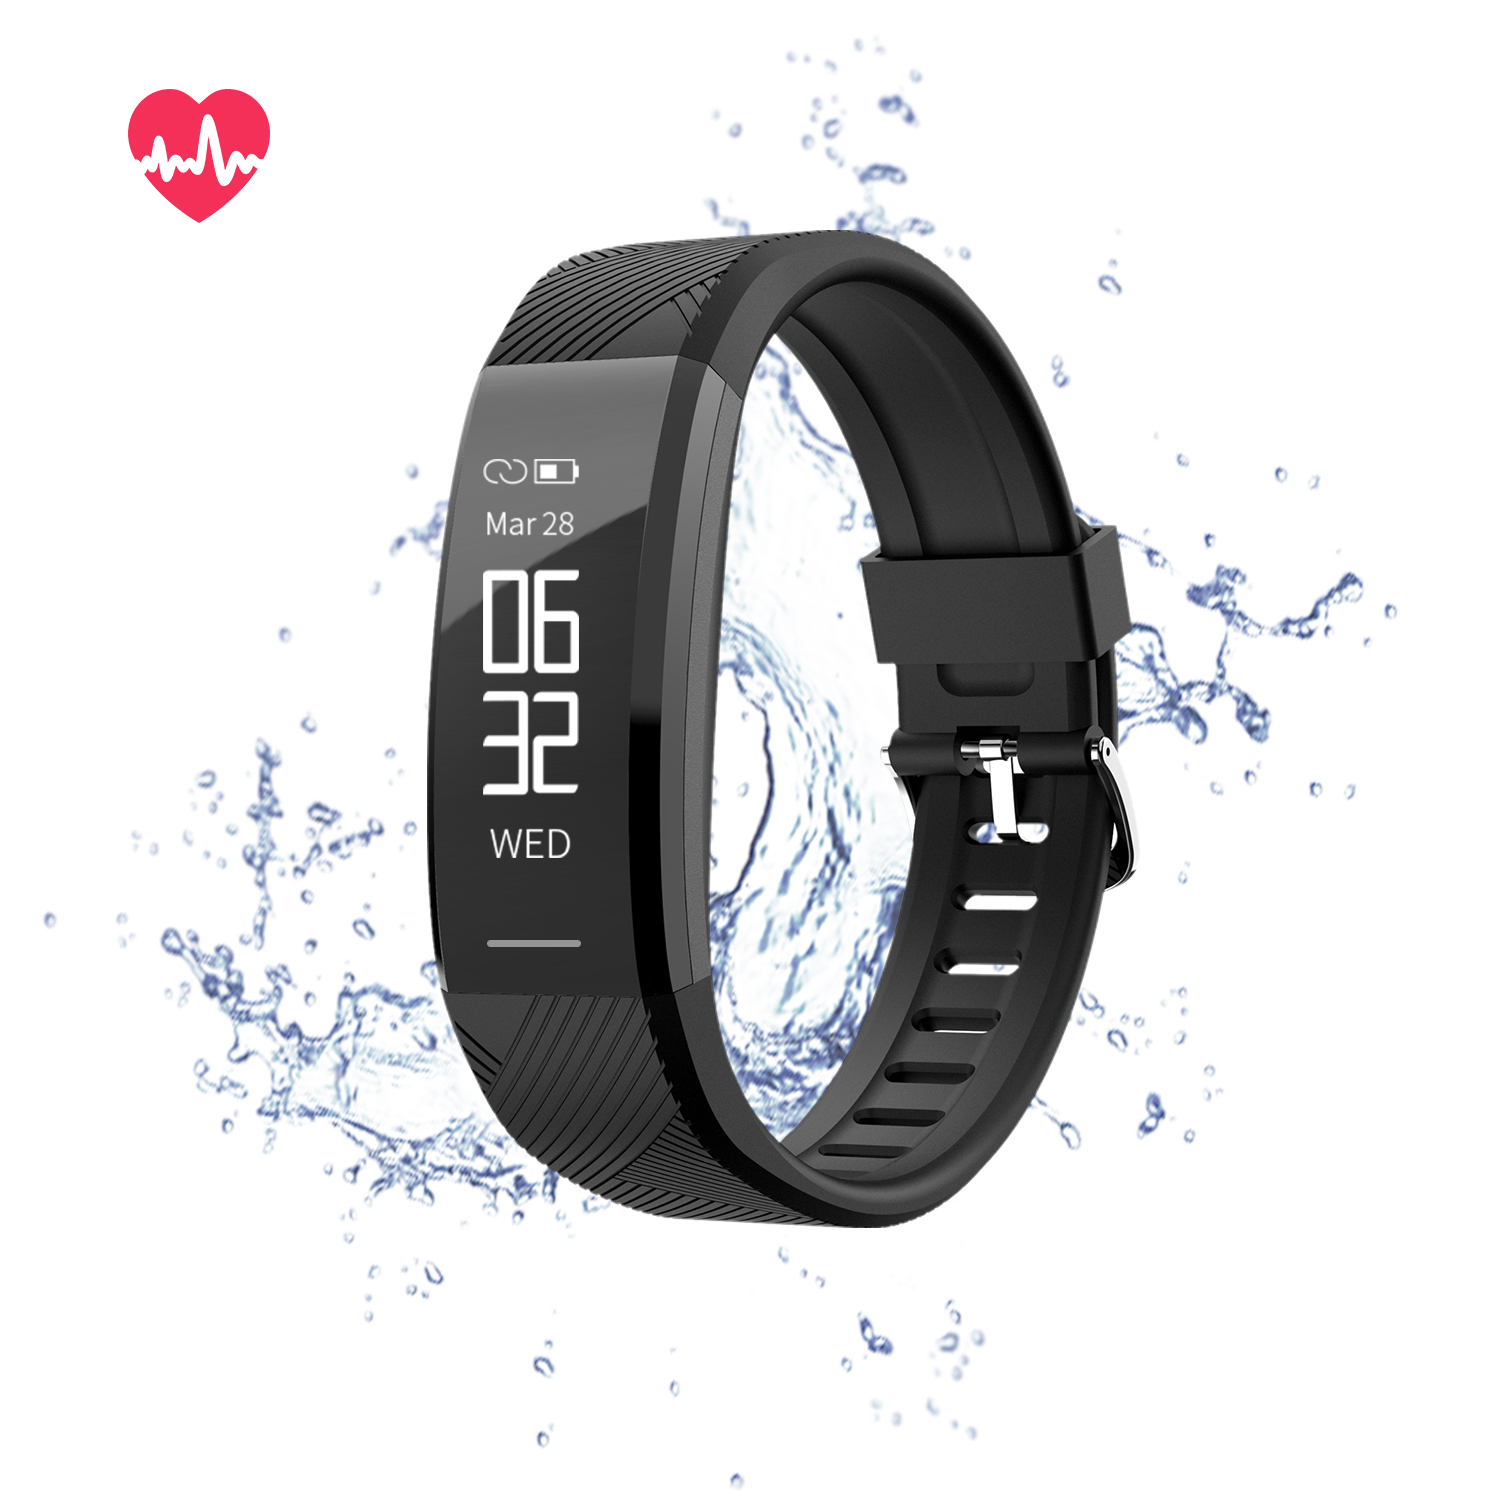 Bluetooth Fitness Tracker Smart Bracelet Watch Heart Rate Monitor Activity Tracker with Step Counter Sleep Monitor IP67 Waterproof Pedometer for Android and iOS Smartphone